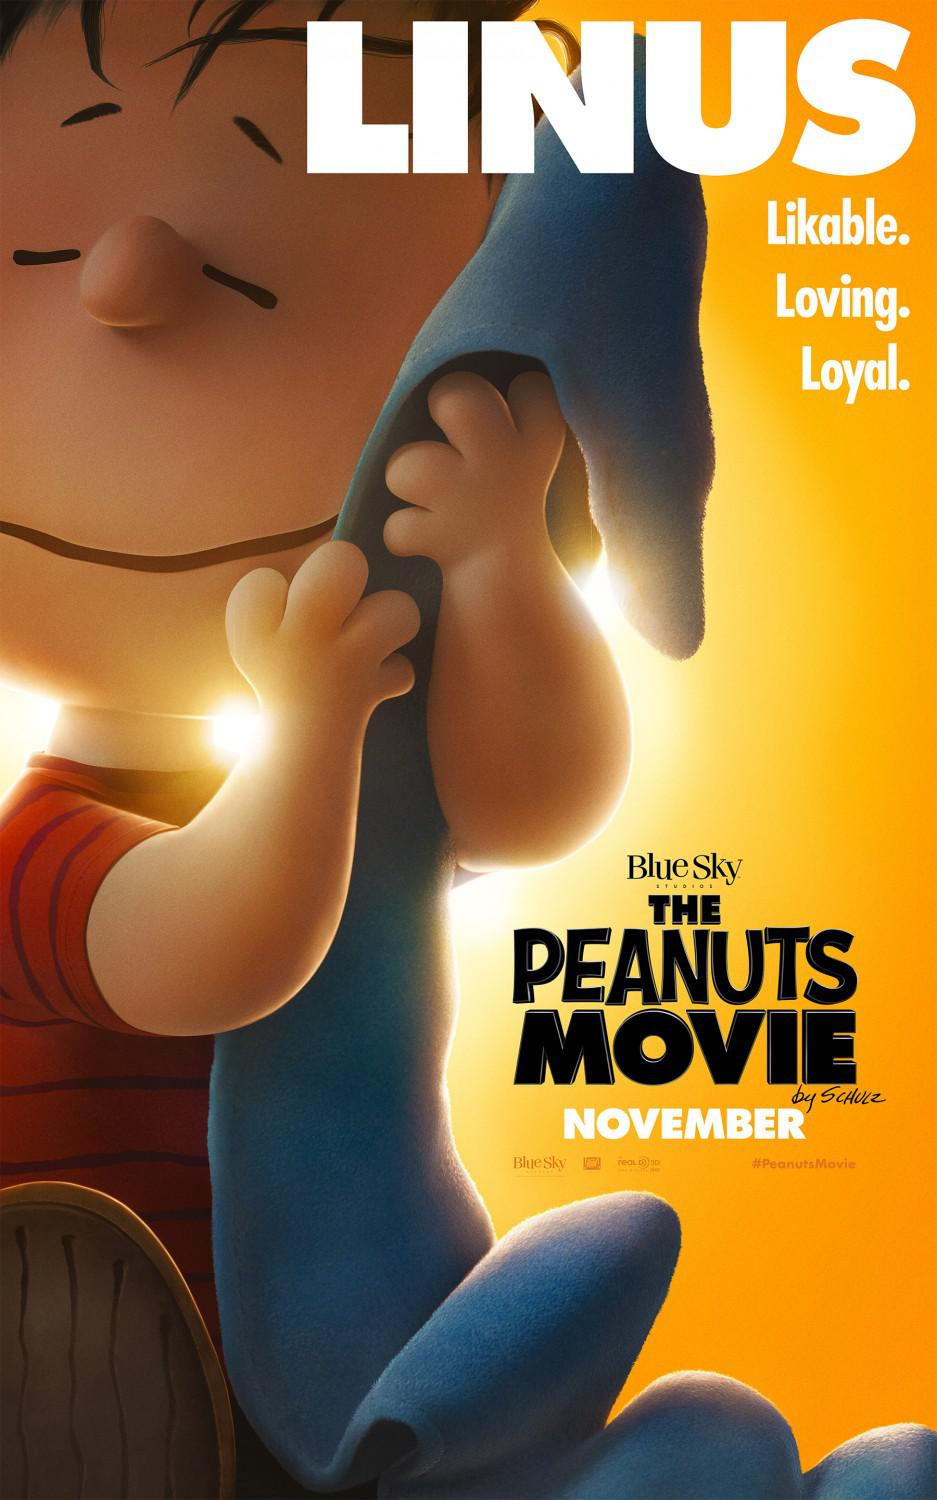 Snoopy and Charlie Brown the peanuts movie - Linus